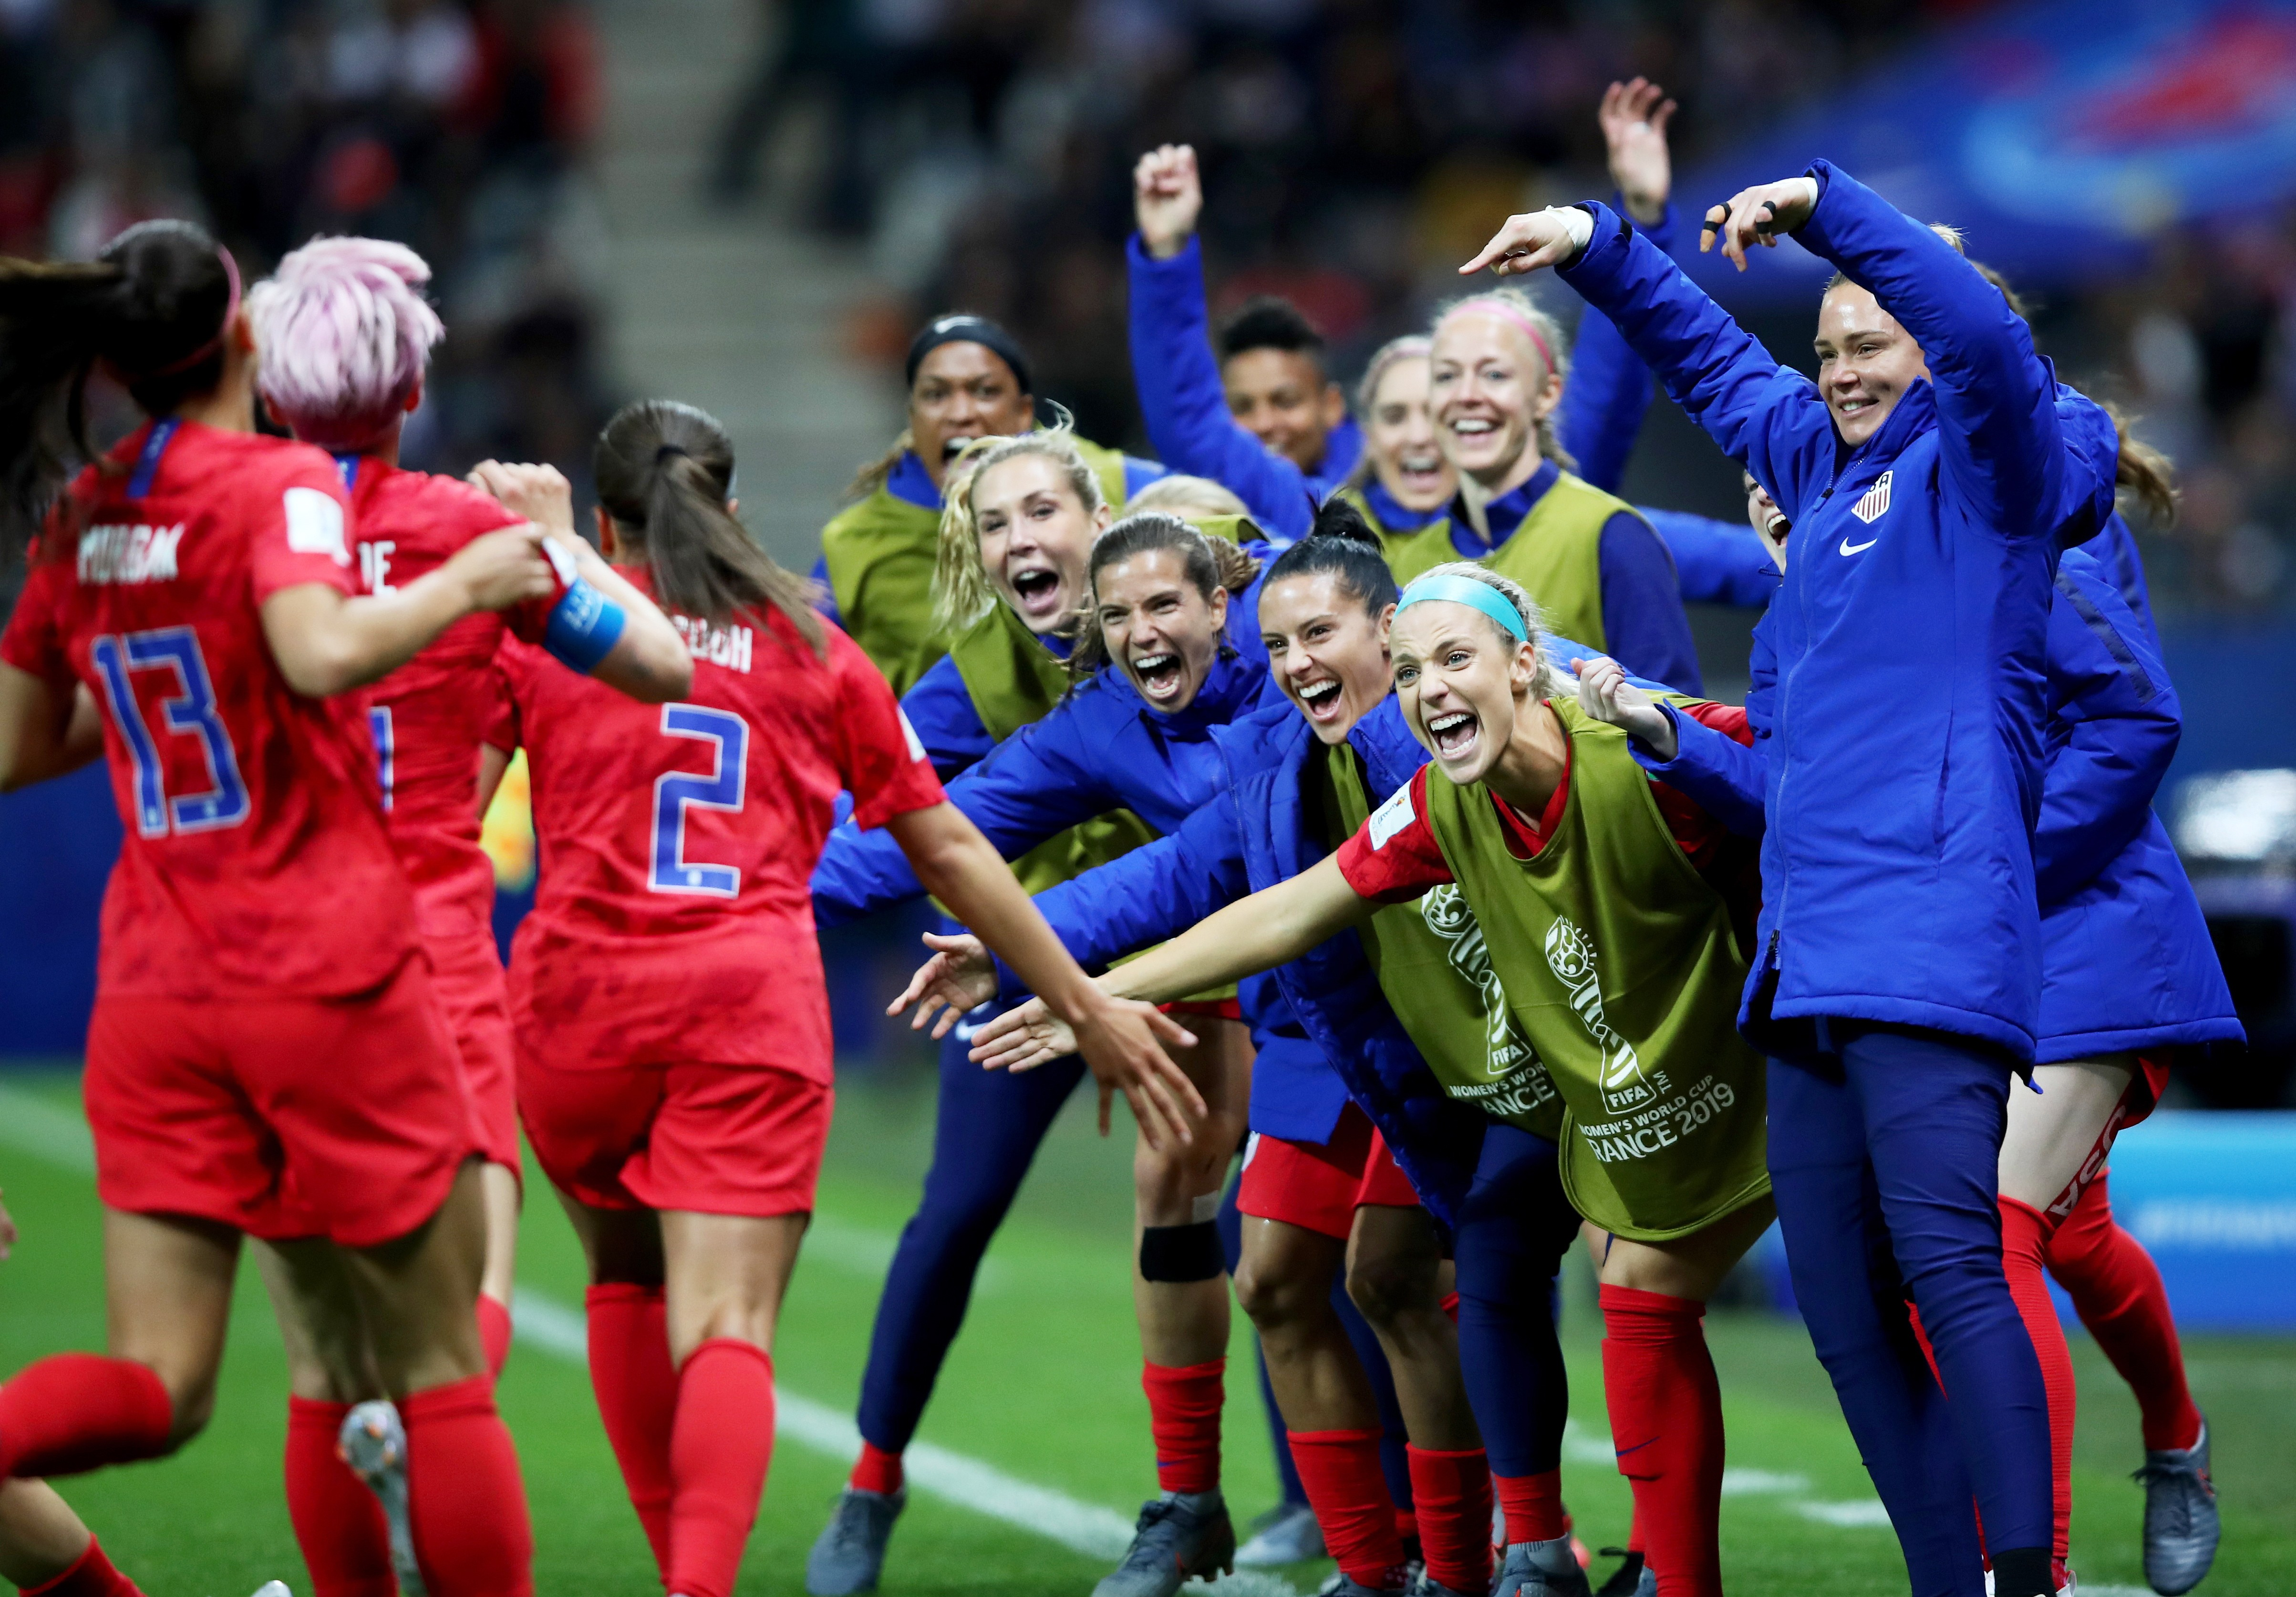 1f1c1e694 Fifa Women's World Cup 2019: USWNT beat Thailand 13-0 to provoke criticism  for 'running up the score'